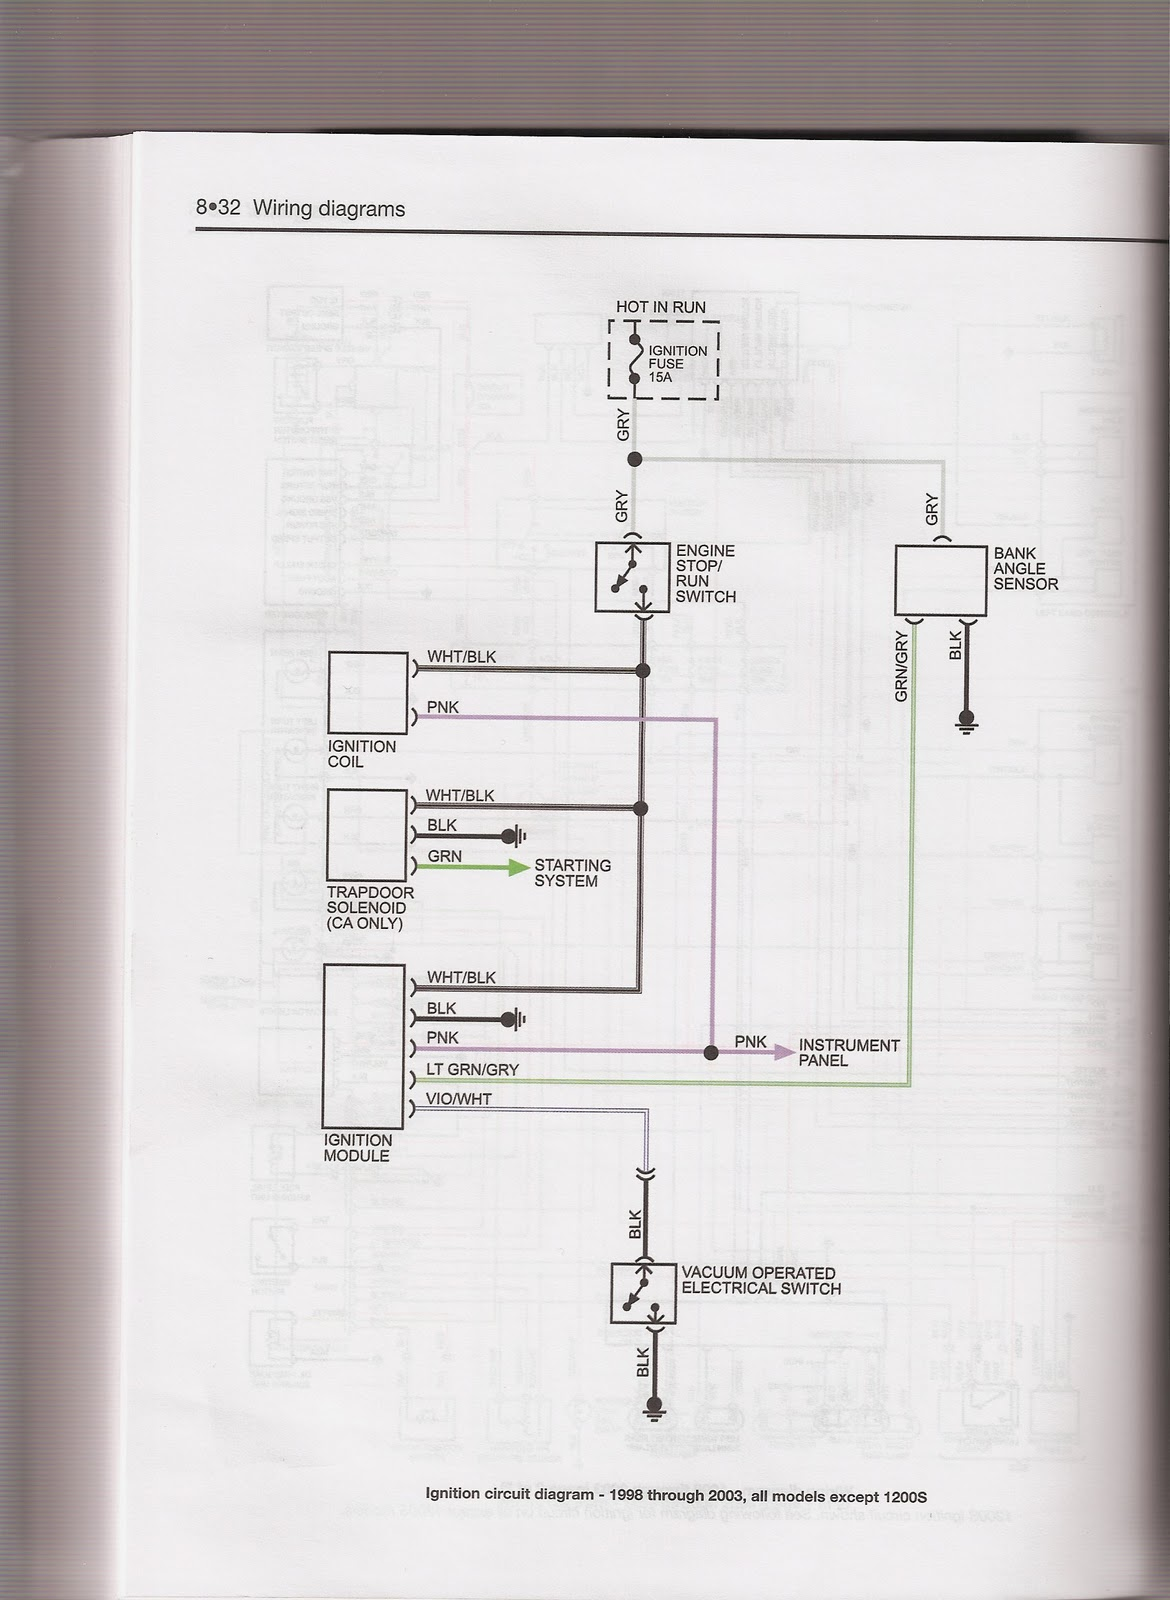 1993 ford thunderbird stereo wiring 1993 automotive wiring diagrams description scan0016 ford thunderbird stereo wiring